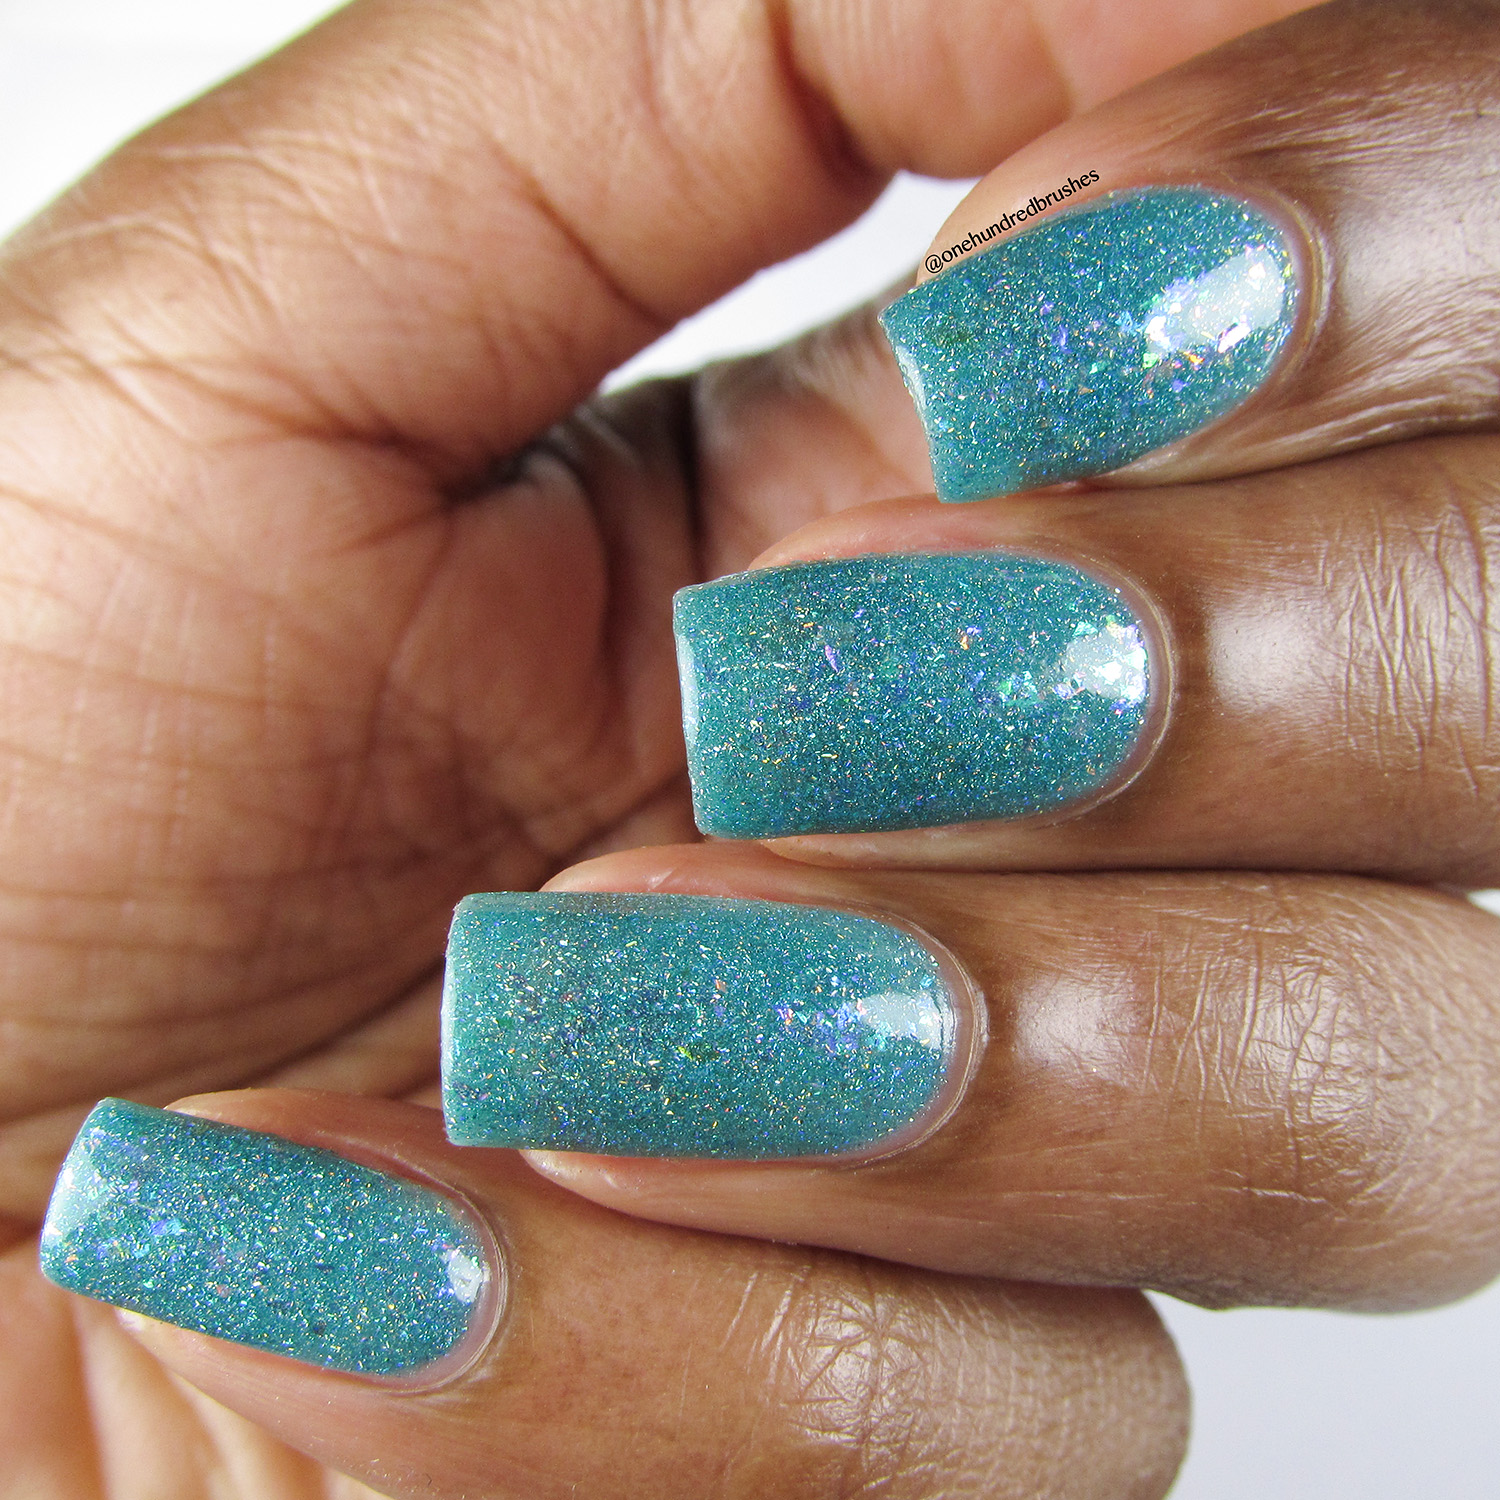 Hubble'd Together - Angle - KBShimmer - Polish Pickup April 2018 - glow in the dark - jelly polish - unicorn flakes